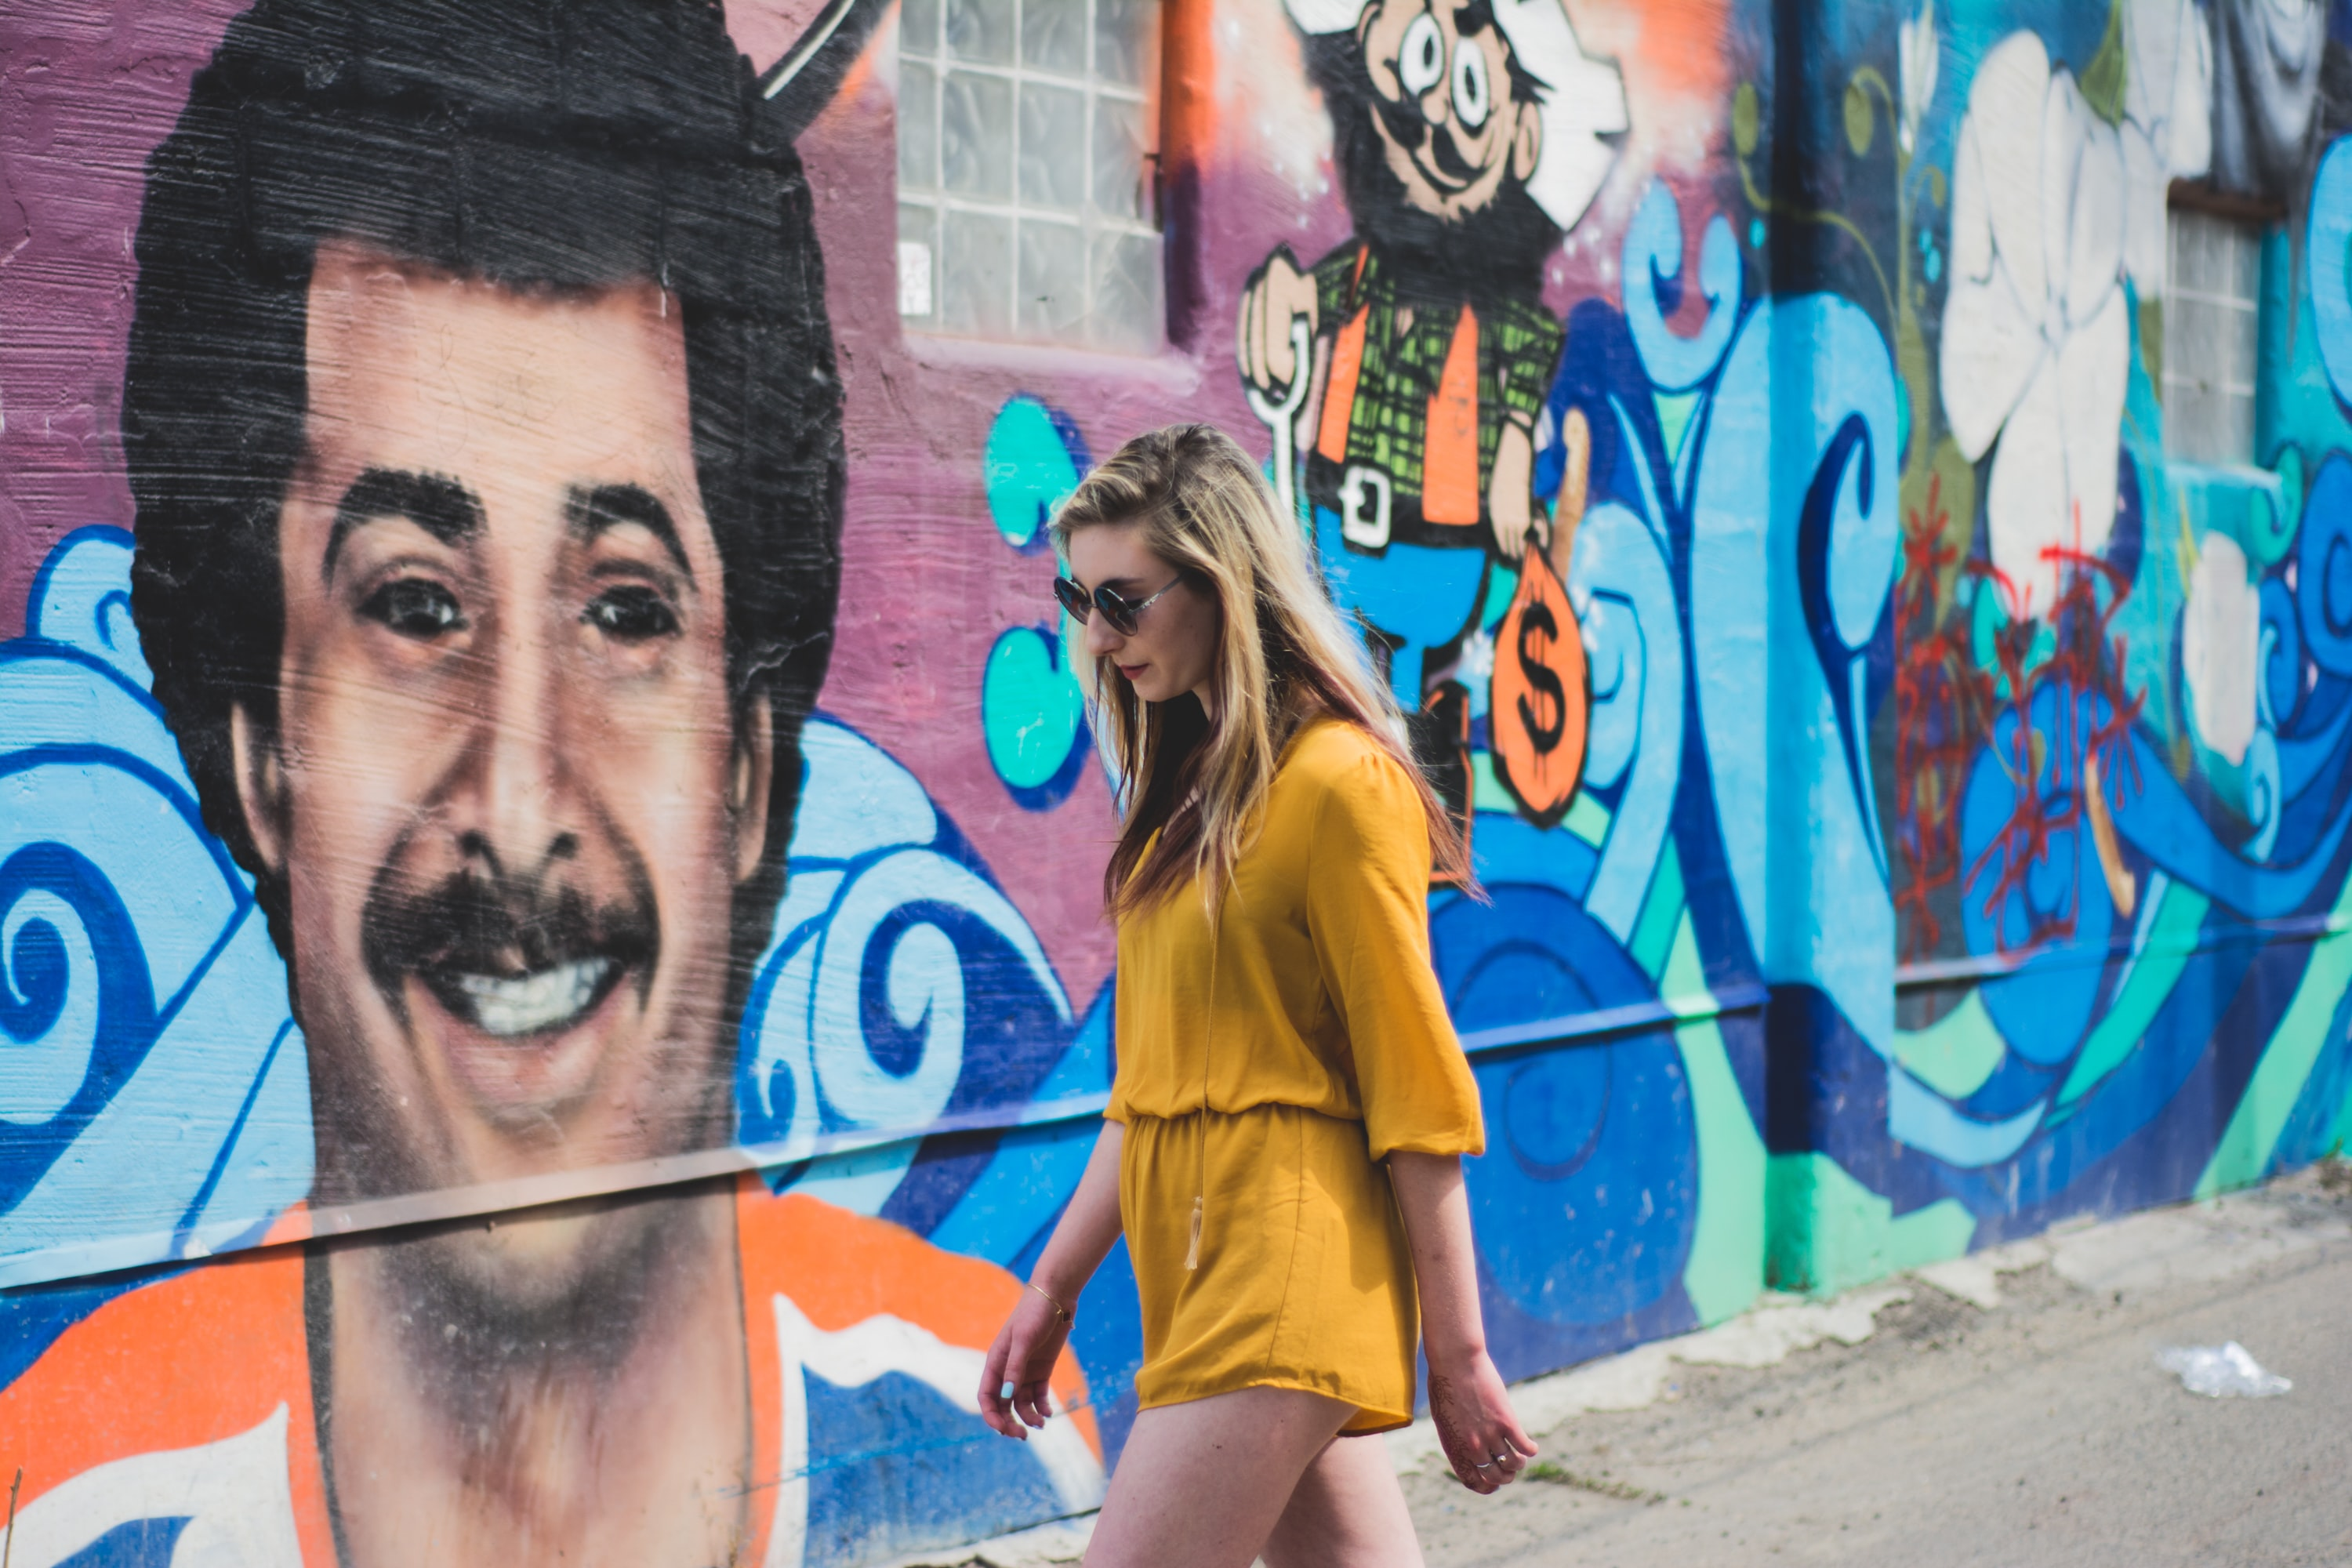 Attractive young blonde woman in sunglasses and yellow dress walking past colorful face graffiti artwork